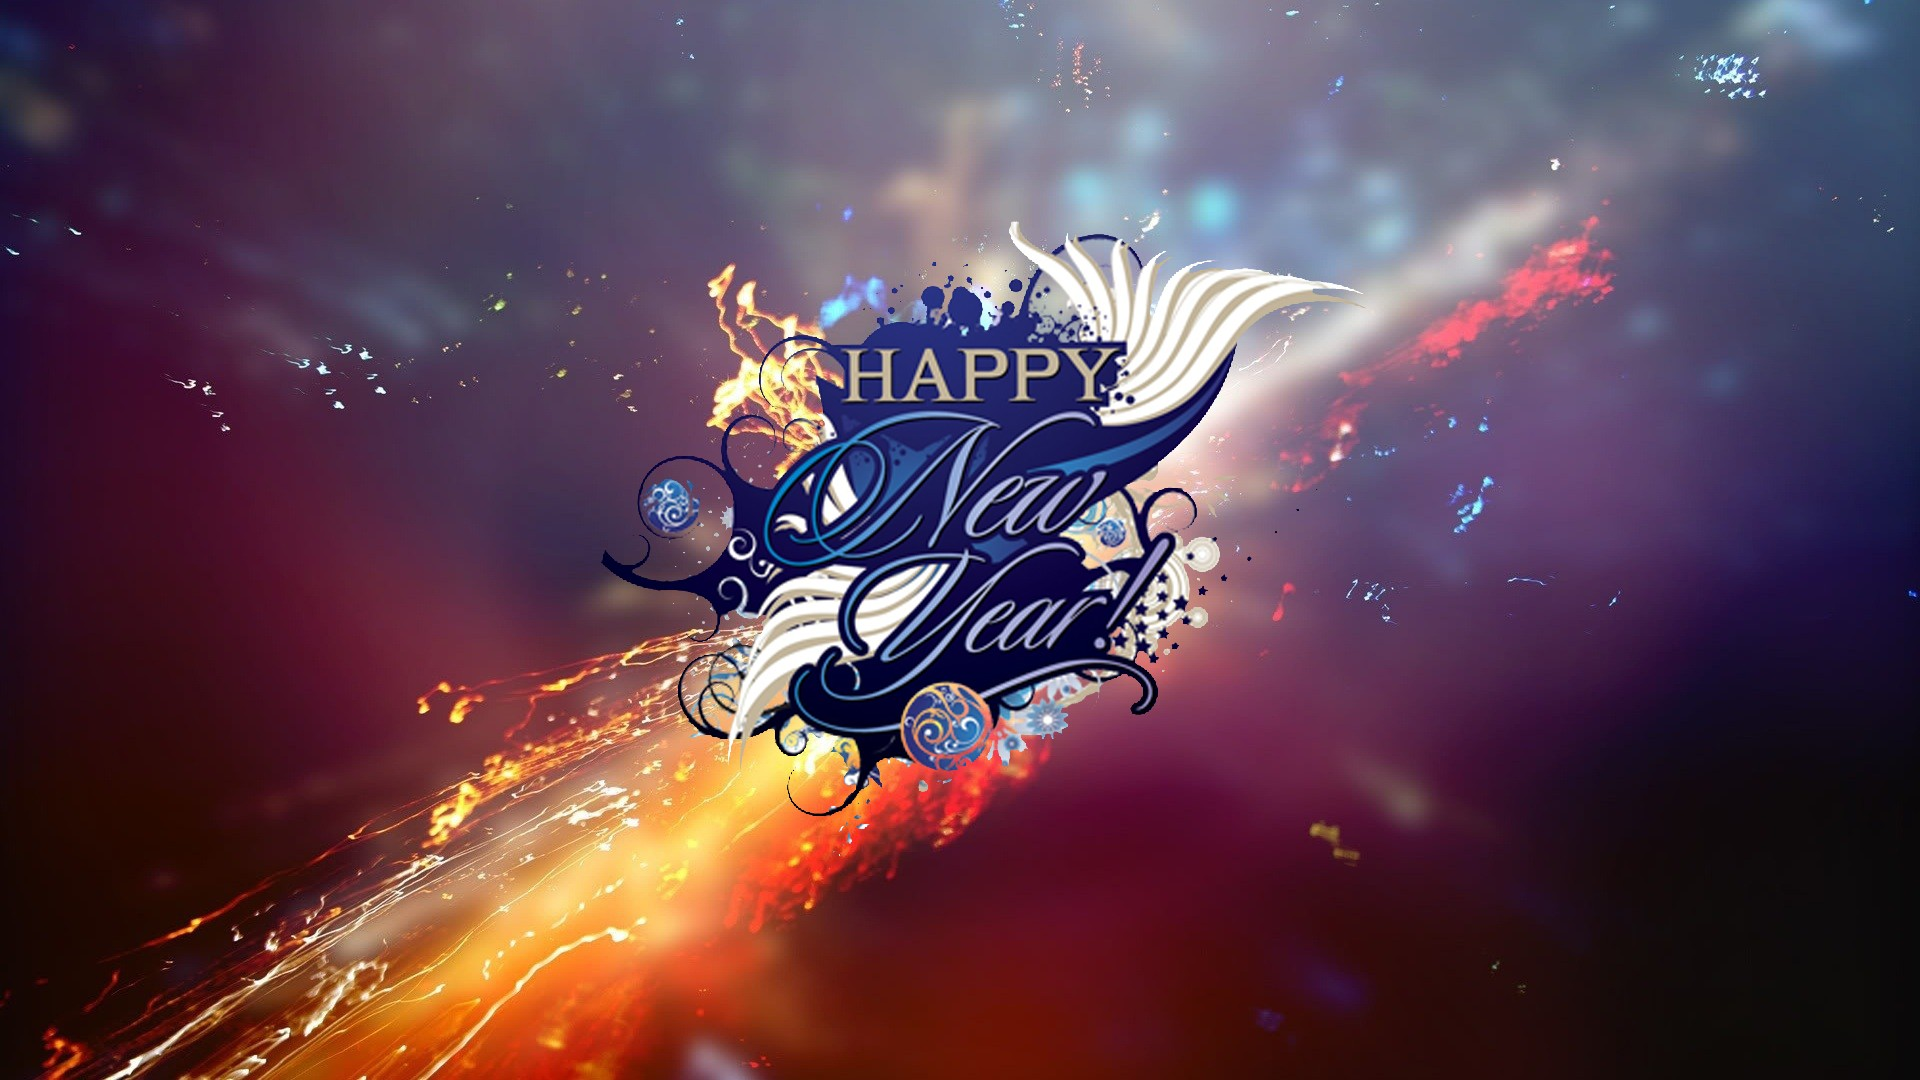 New Year HD Wallpaper   Background Image   1920x1080   ID ...